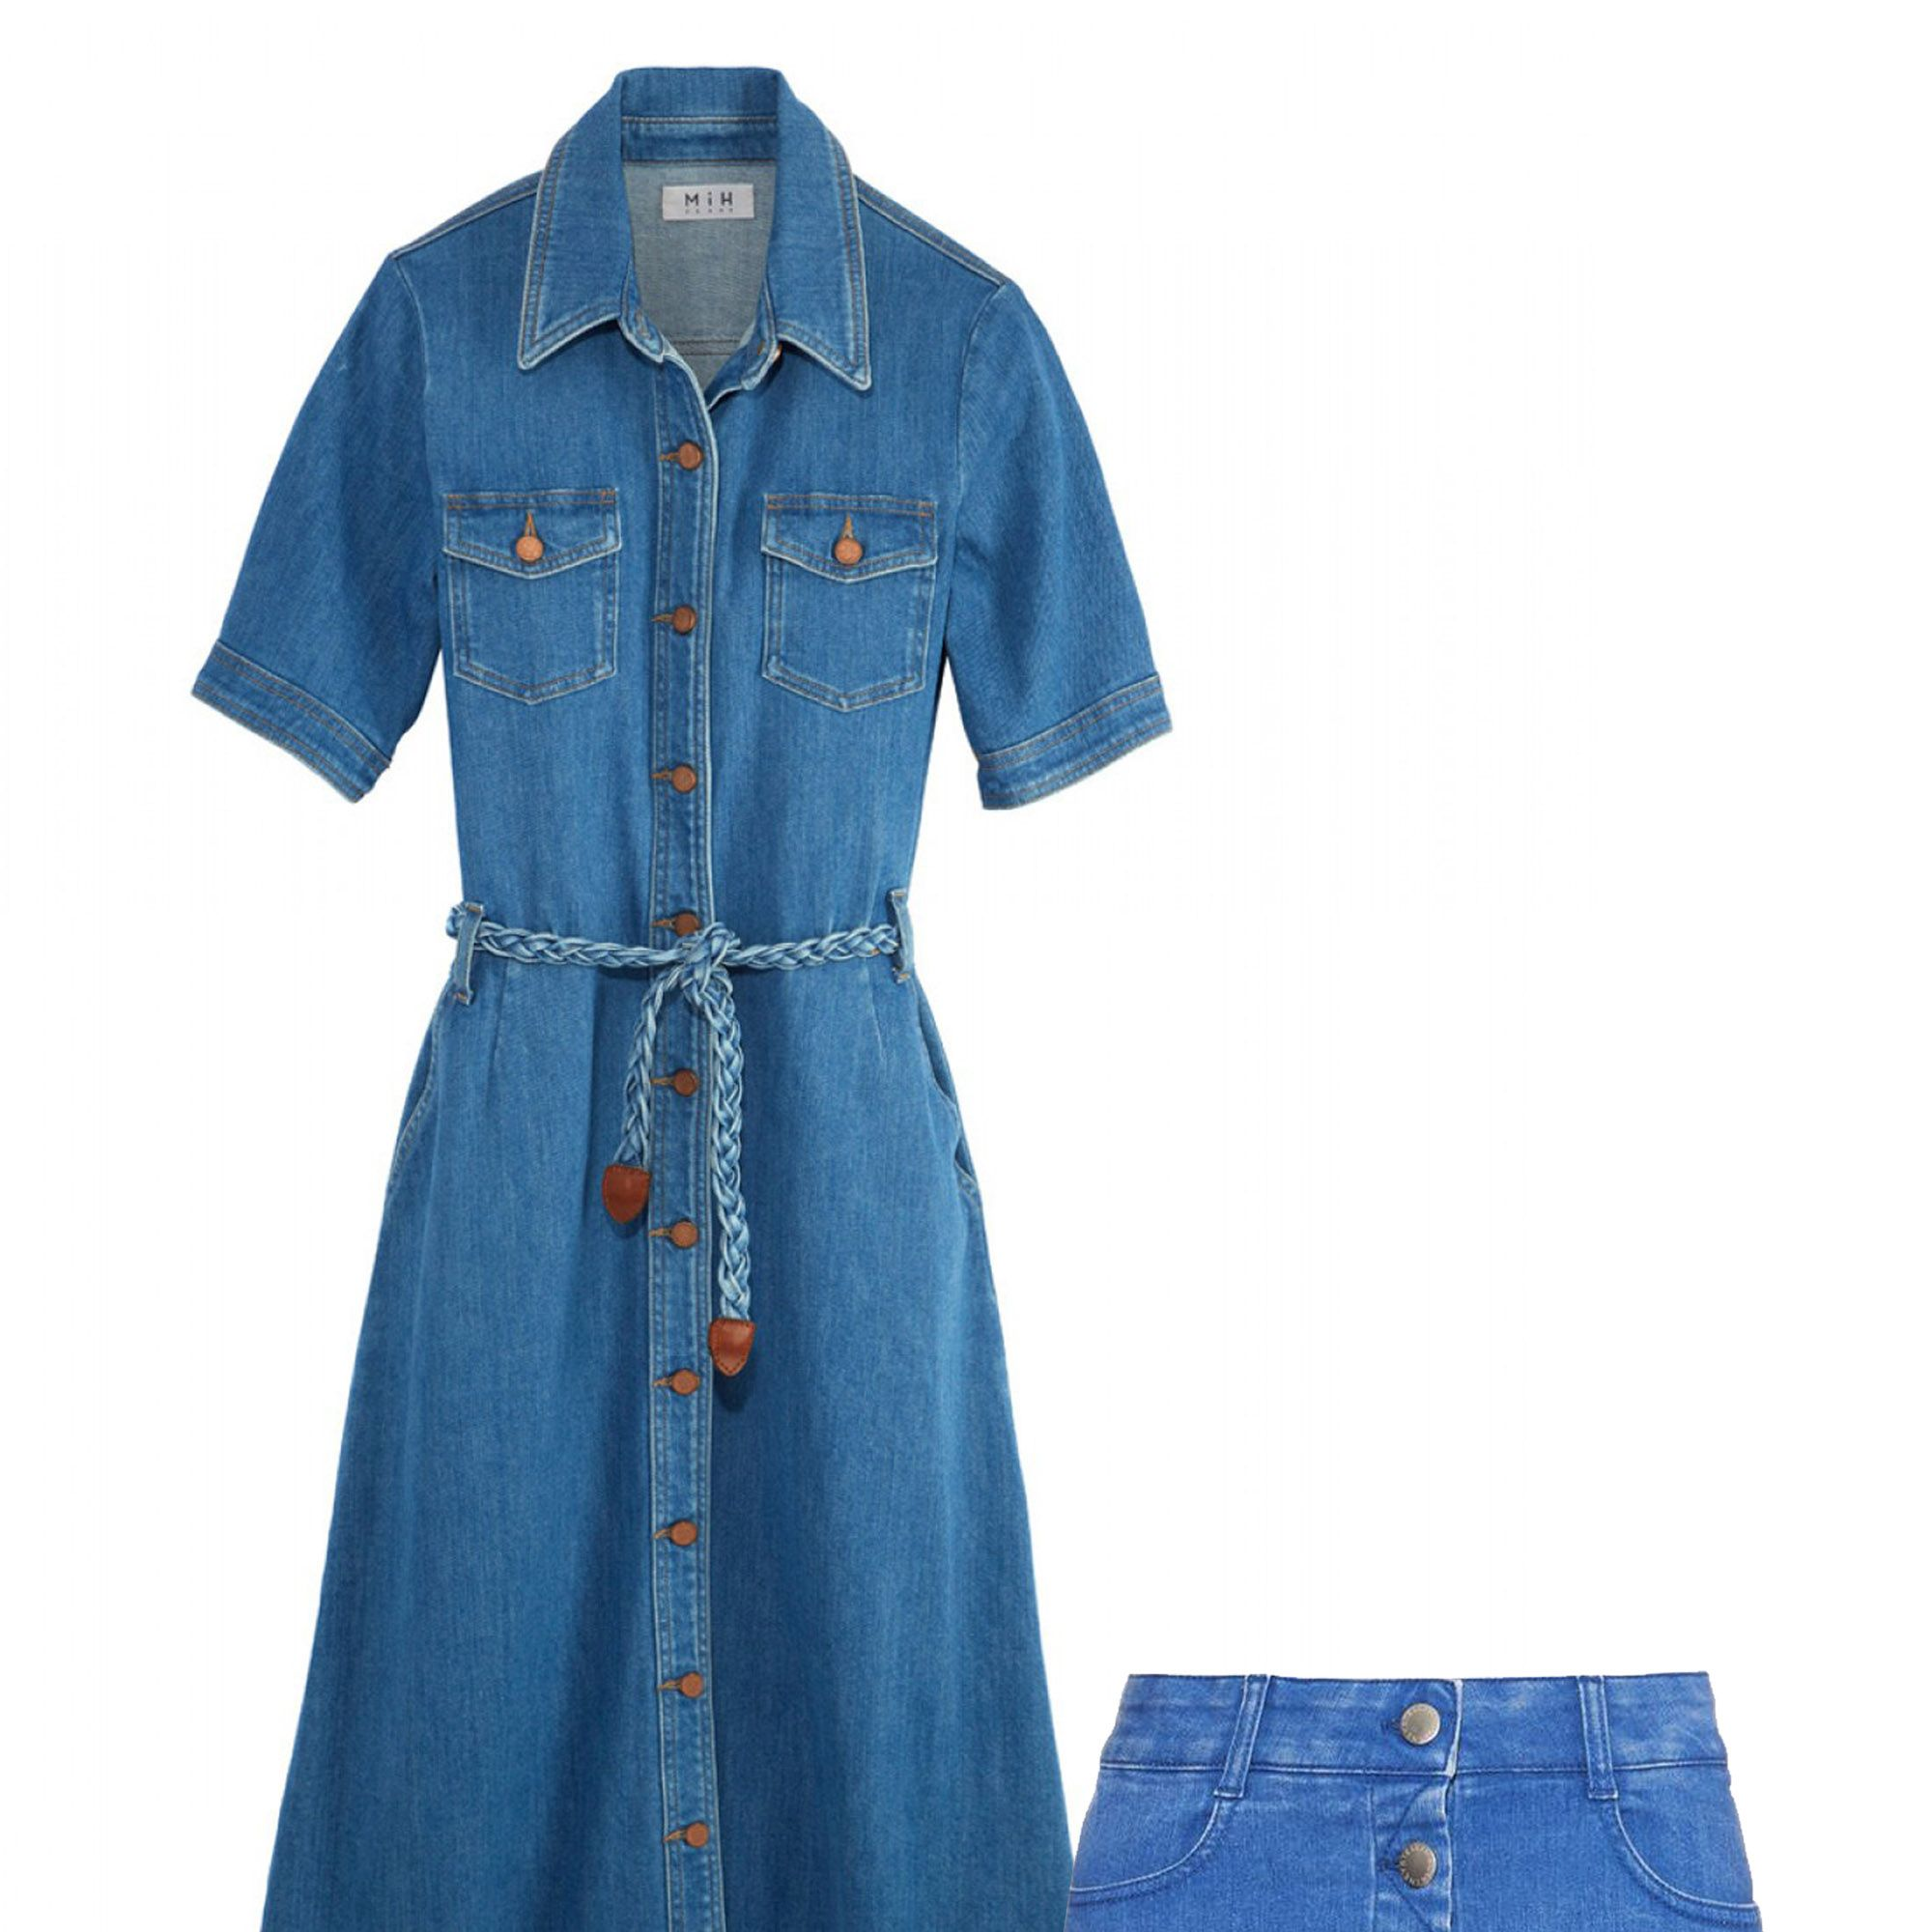 Embrace fashion's main decade of choice in feminine denim with brass button details.